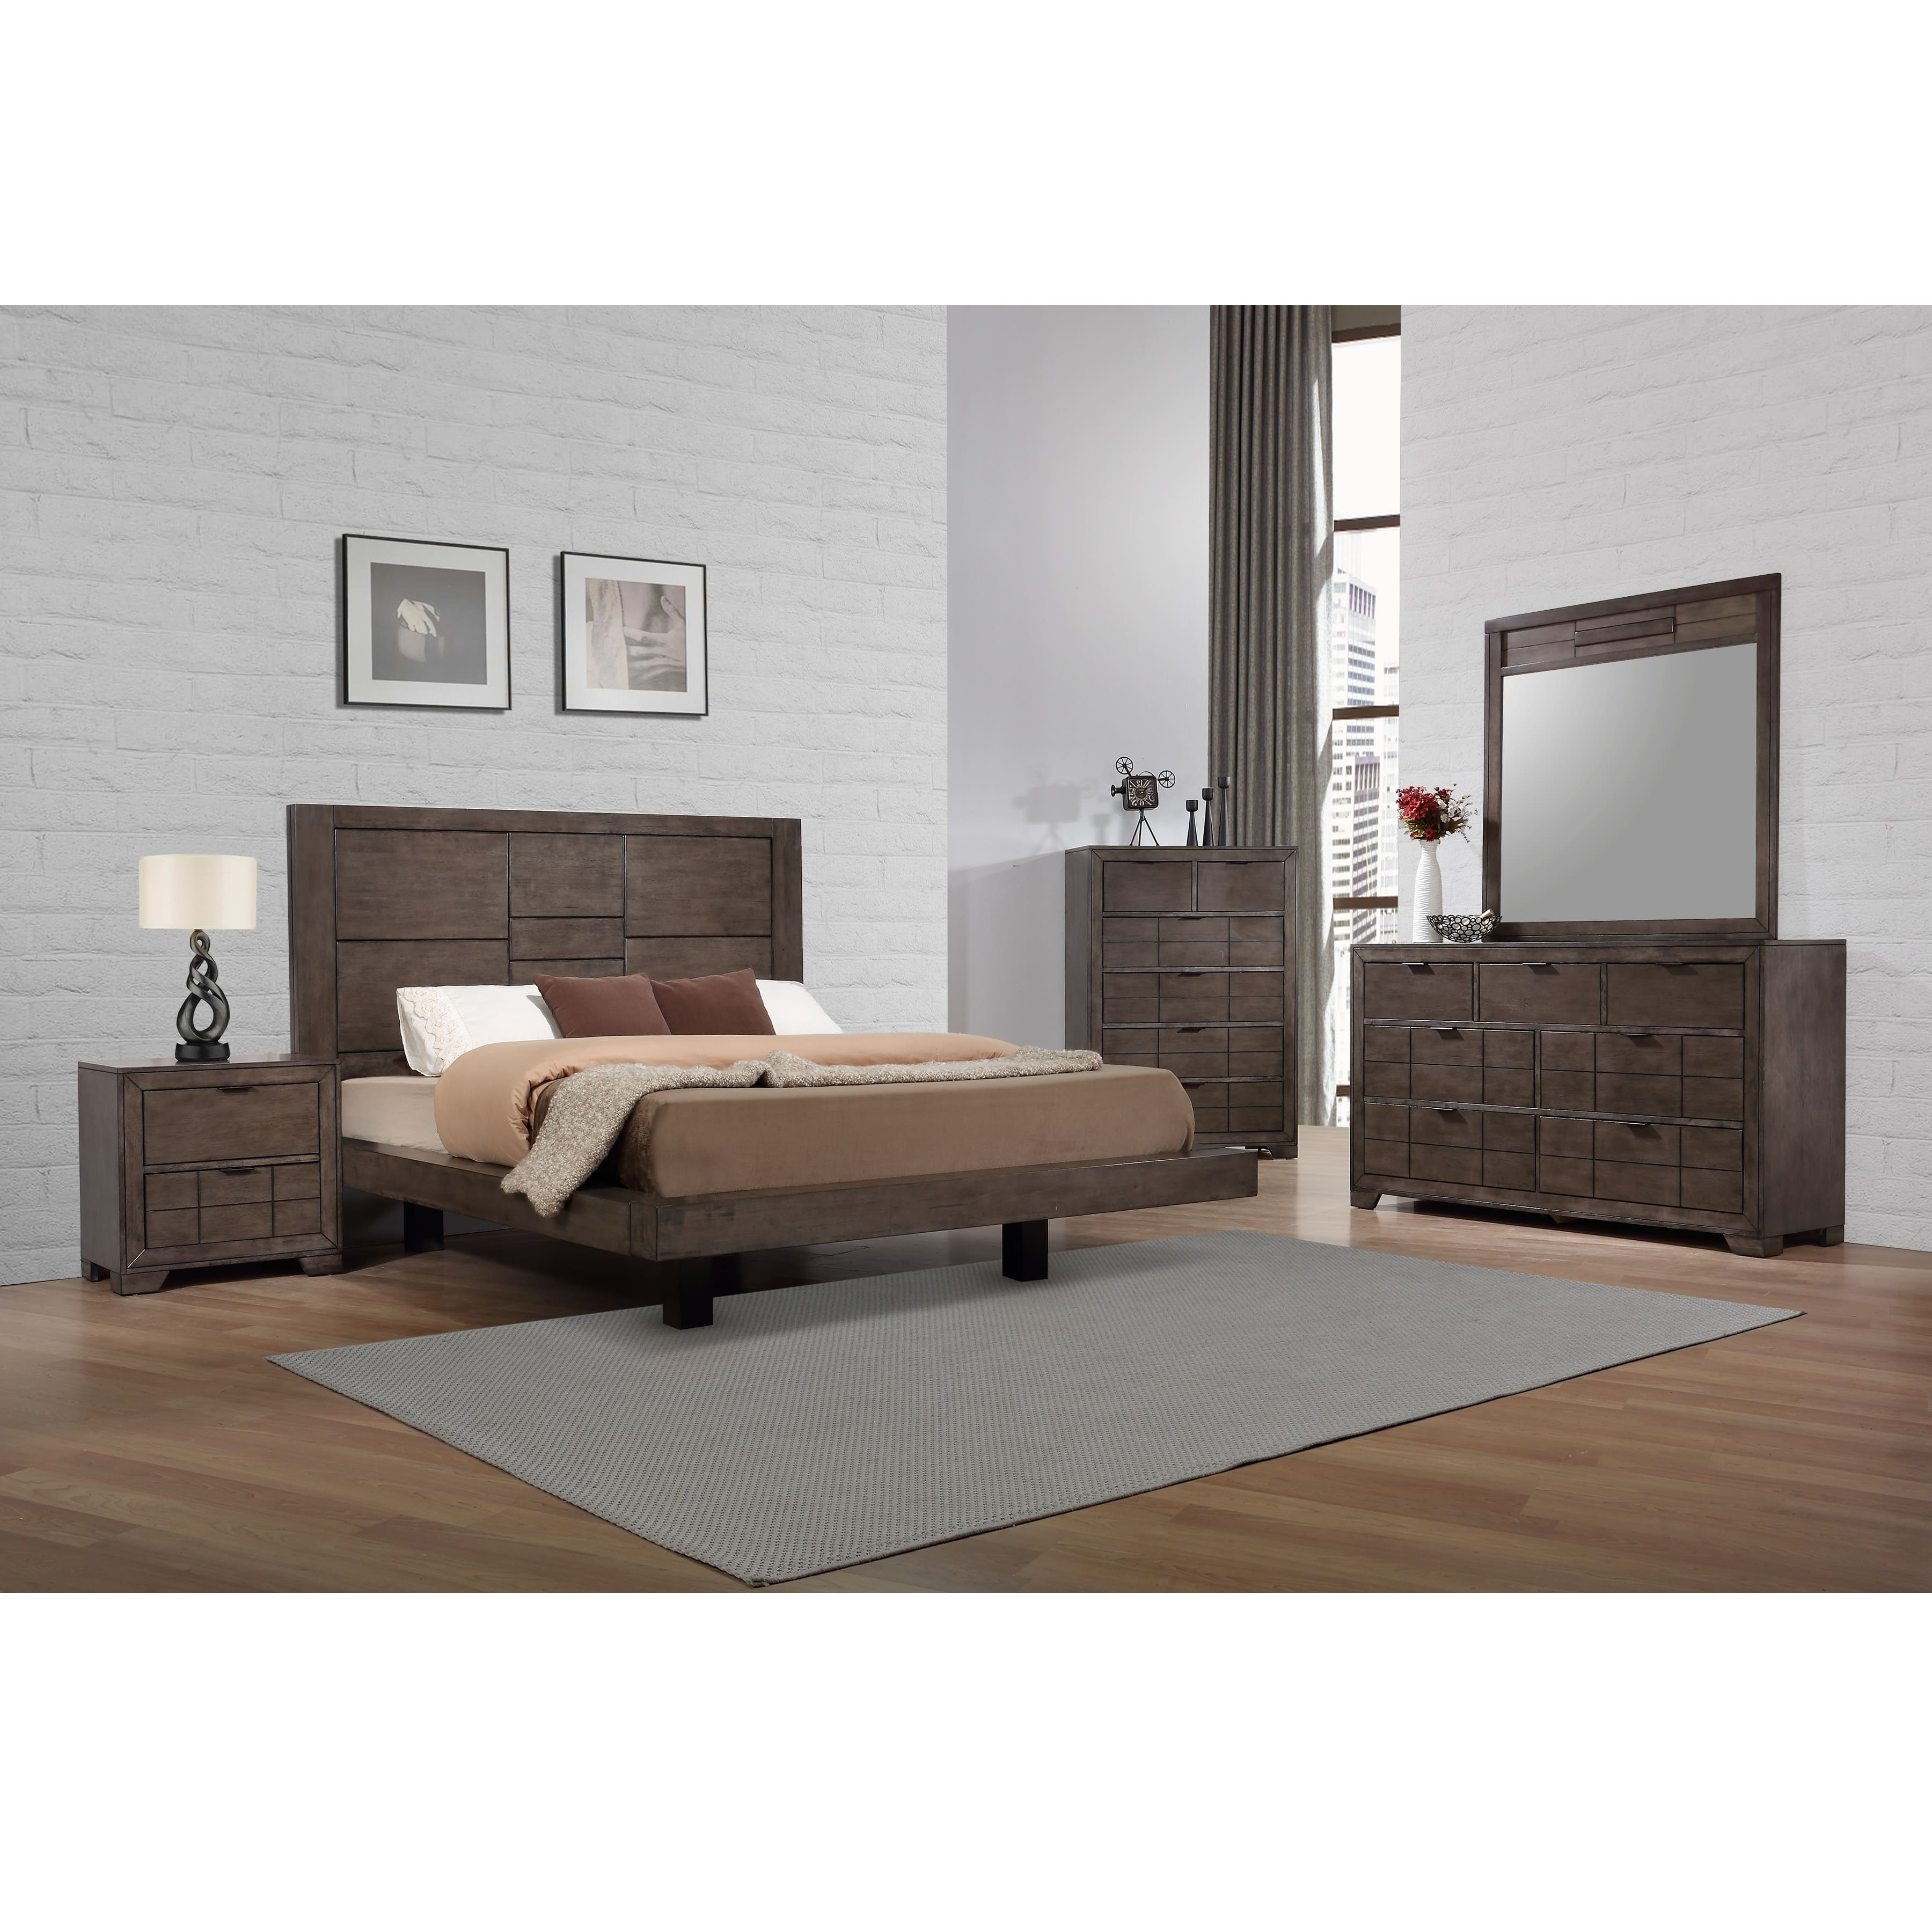 Rent To Own Elements International 7 Piece Logic King Bedroom